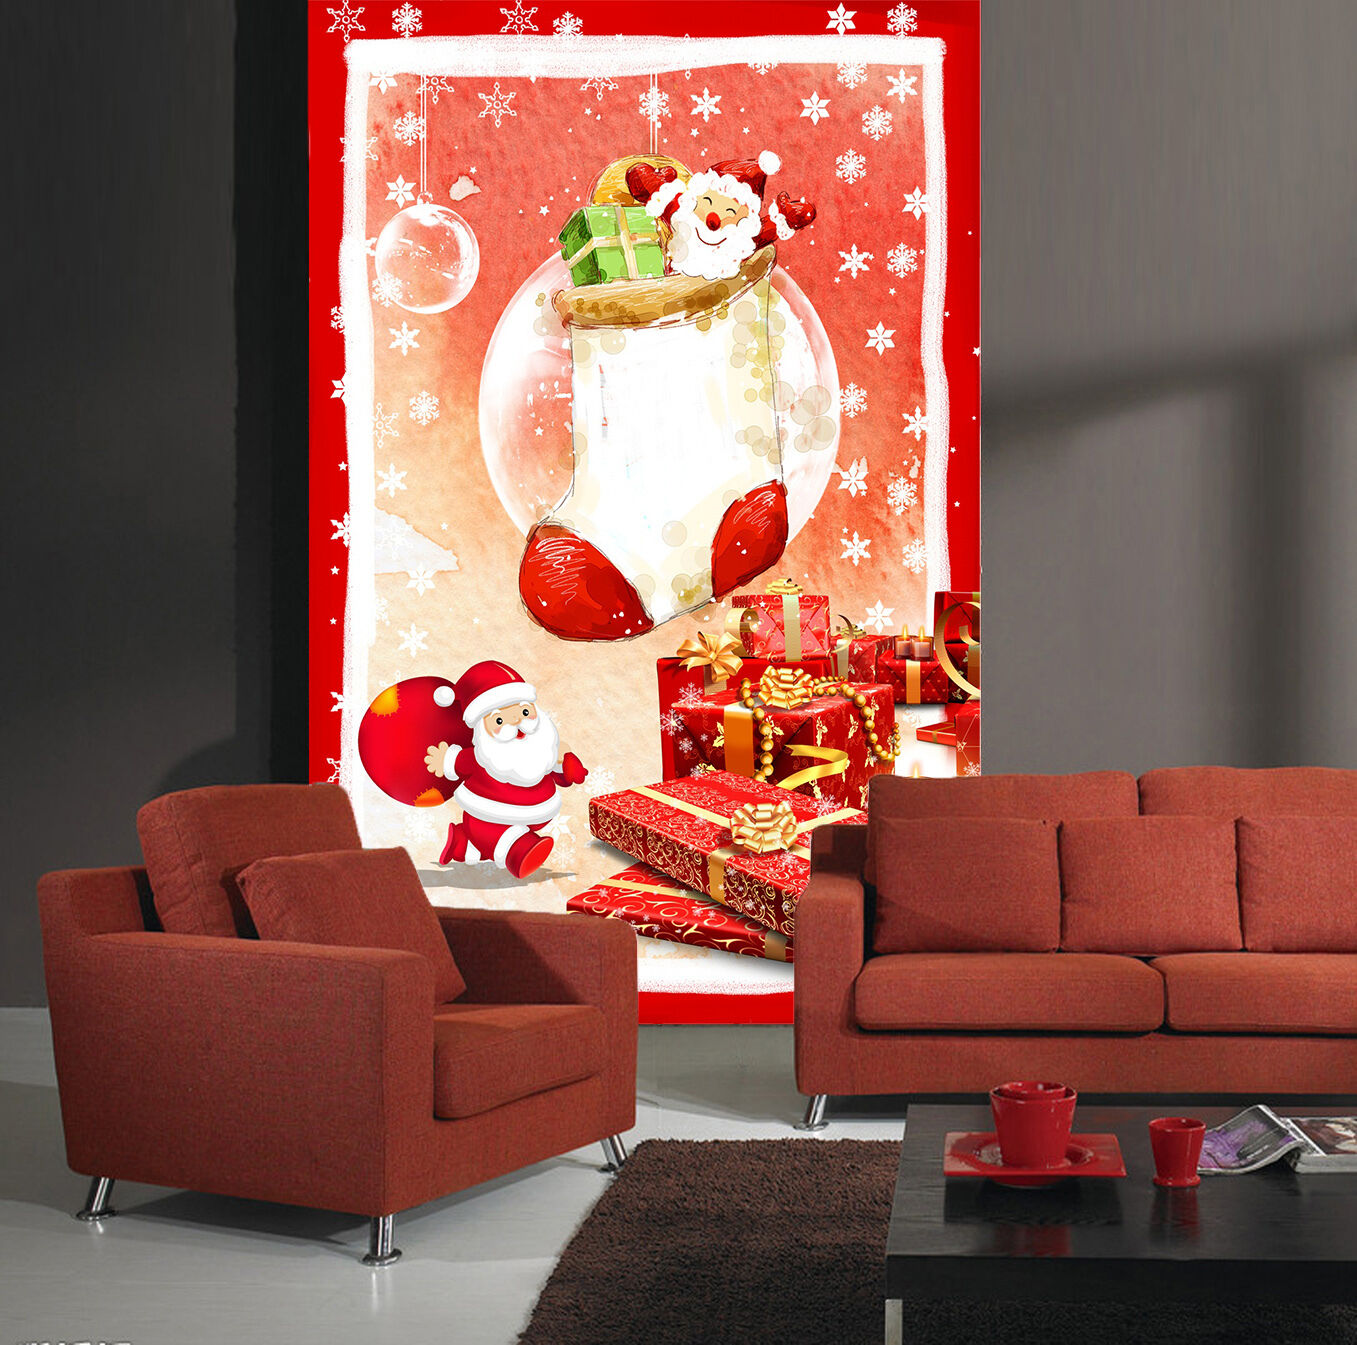 3D Christmas White Snowman 66 Wall Paper Wall Print Decal Wall Deco Indoor Wall